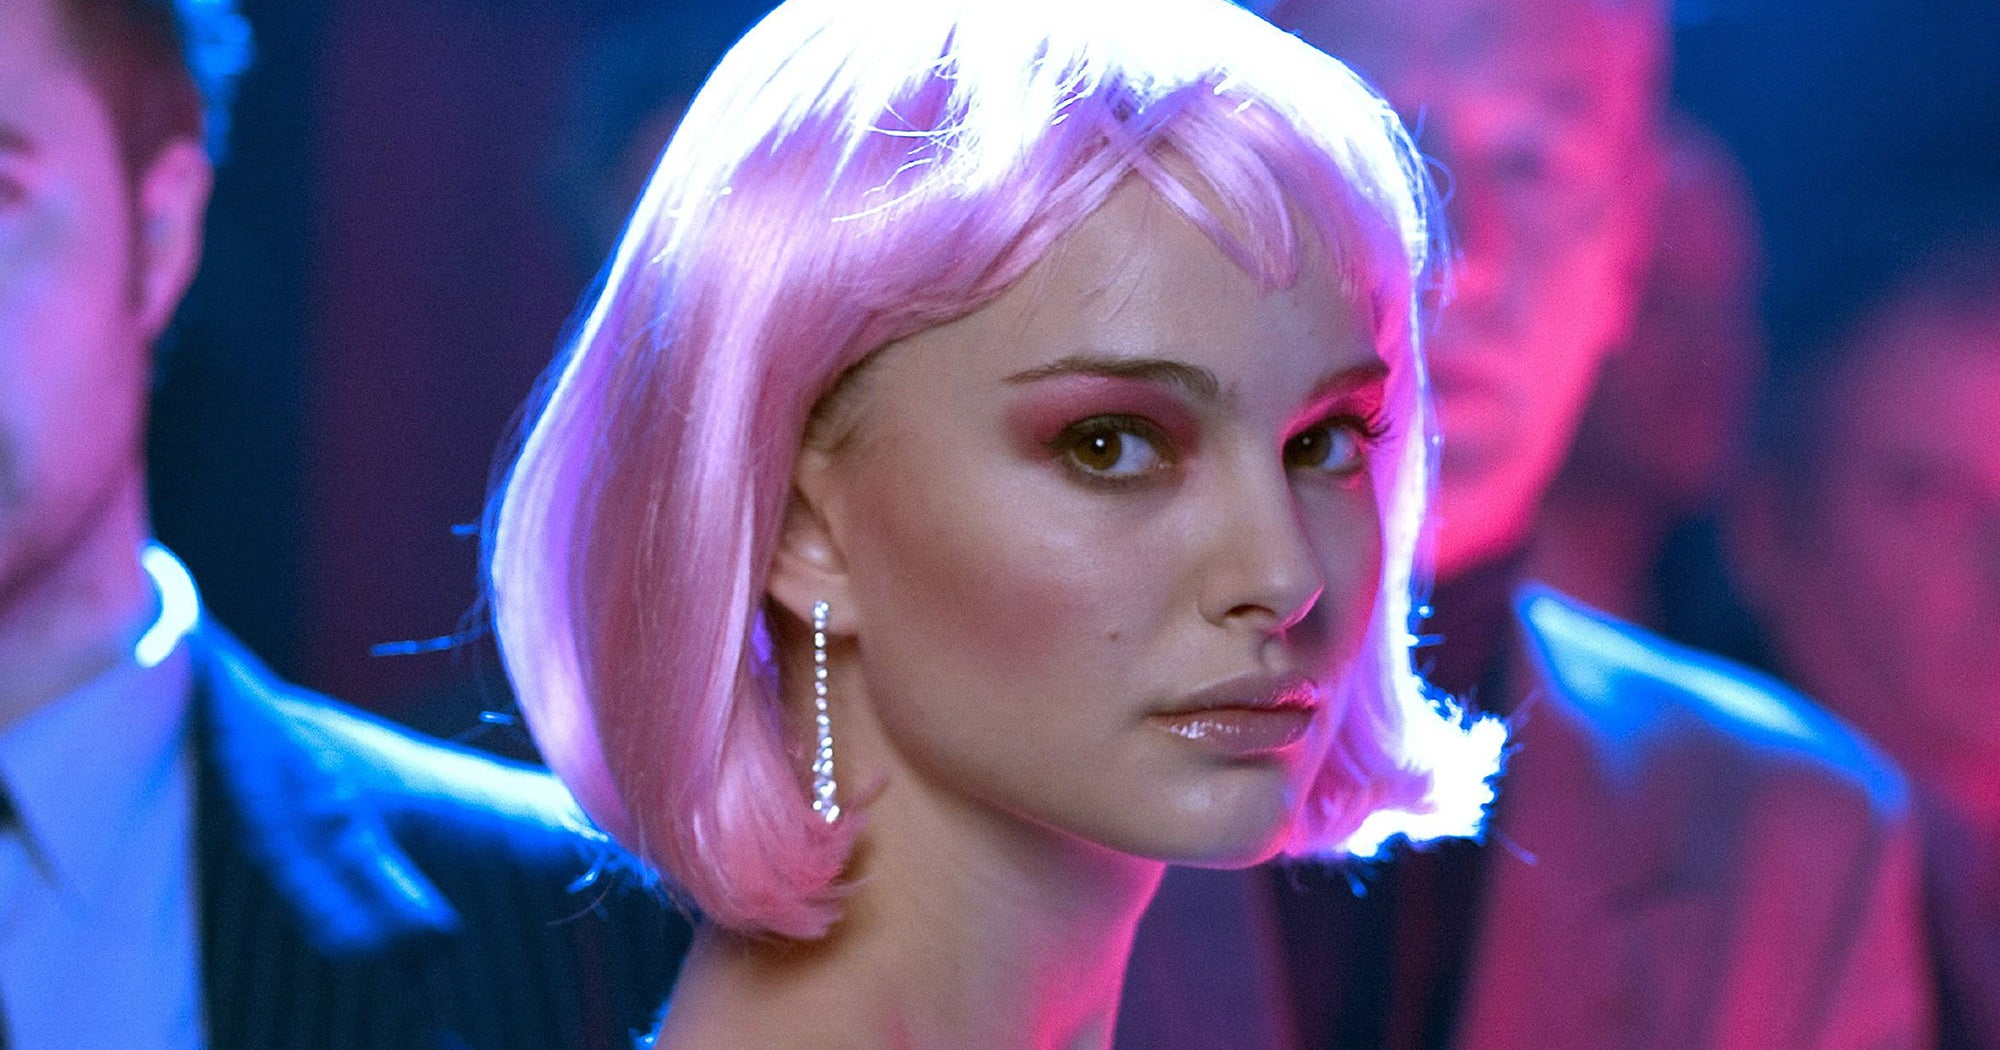 Halloween Costumes With Pink Hair To Rock Your Wig 2019